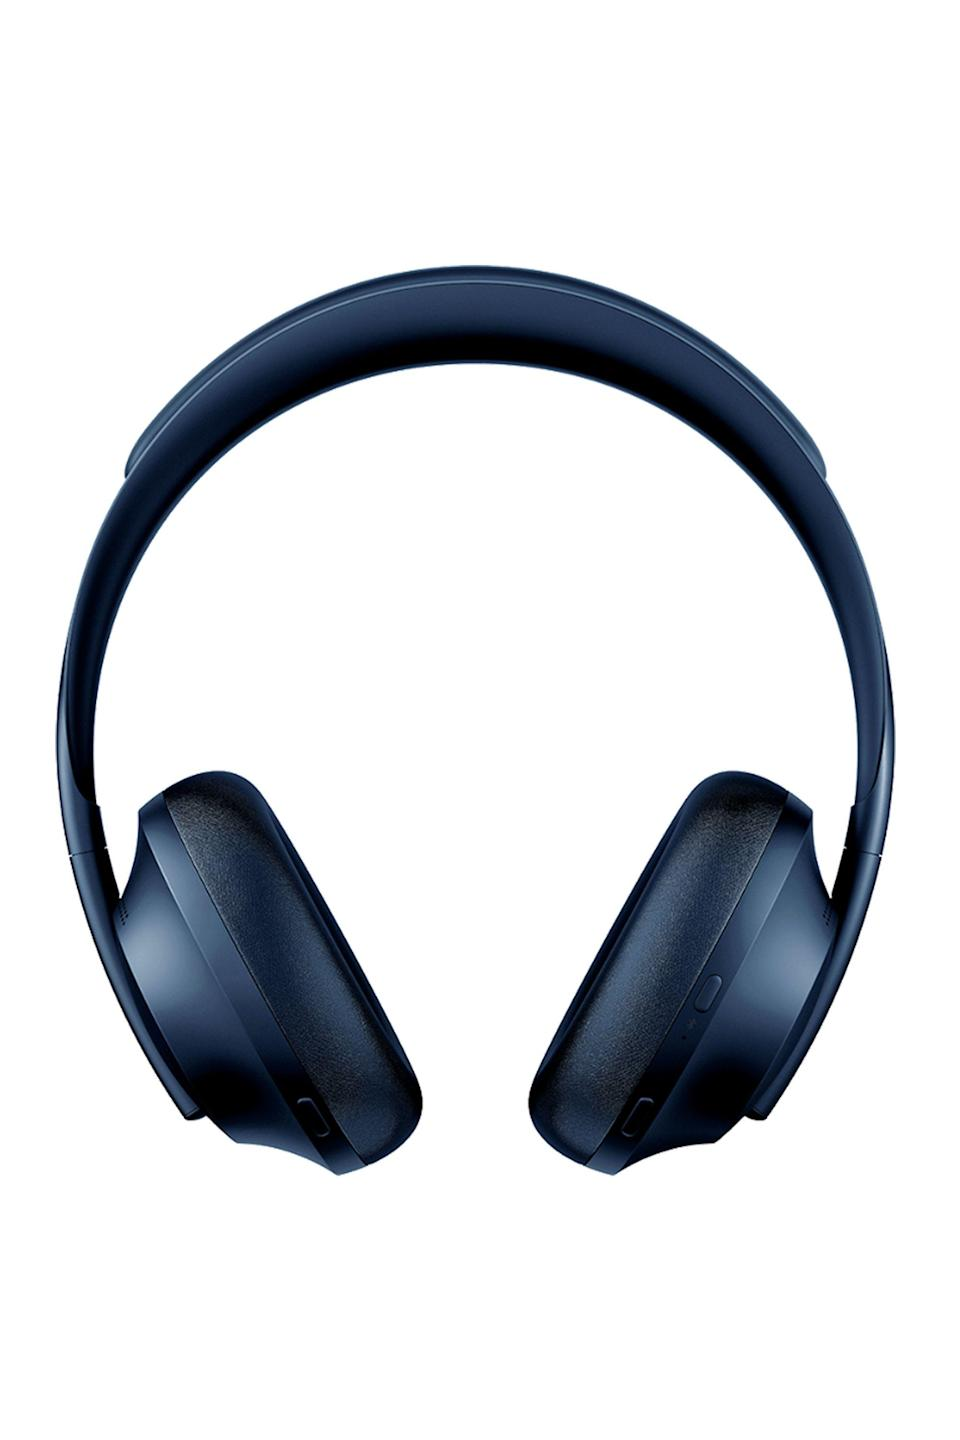 """<p>bose.com</p><p><strong>$379.95</strong></p><p><a href=""""https://go.redirectingat.com?id=74968X1596630&url=https%3A%2F%2Fwww.bose.com%2Fen_us%2Fproducts%2Fheadphones%2Fnoise_cancelling_headphones%2Fnoise-cancelling-headphones-700.html%23v%3Dnoise_cancelling_headphones_700_triple_midnight&sref=https%3A%2F%2Fwww.elle.com%2Ffashion%2Fshopping%2Fg33955592%2Fgifts-for-book-lovers%2F"""" rel=""""nofollow noopener"""" target=""""_blank"""" data-ylk=""""slk:Shop Now"""" class=""""link rapid-noclick-resp"""">Shop Now</a></p><p>Give them these so they can effectively tune out the world while reading.</p>"""